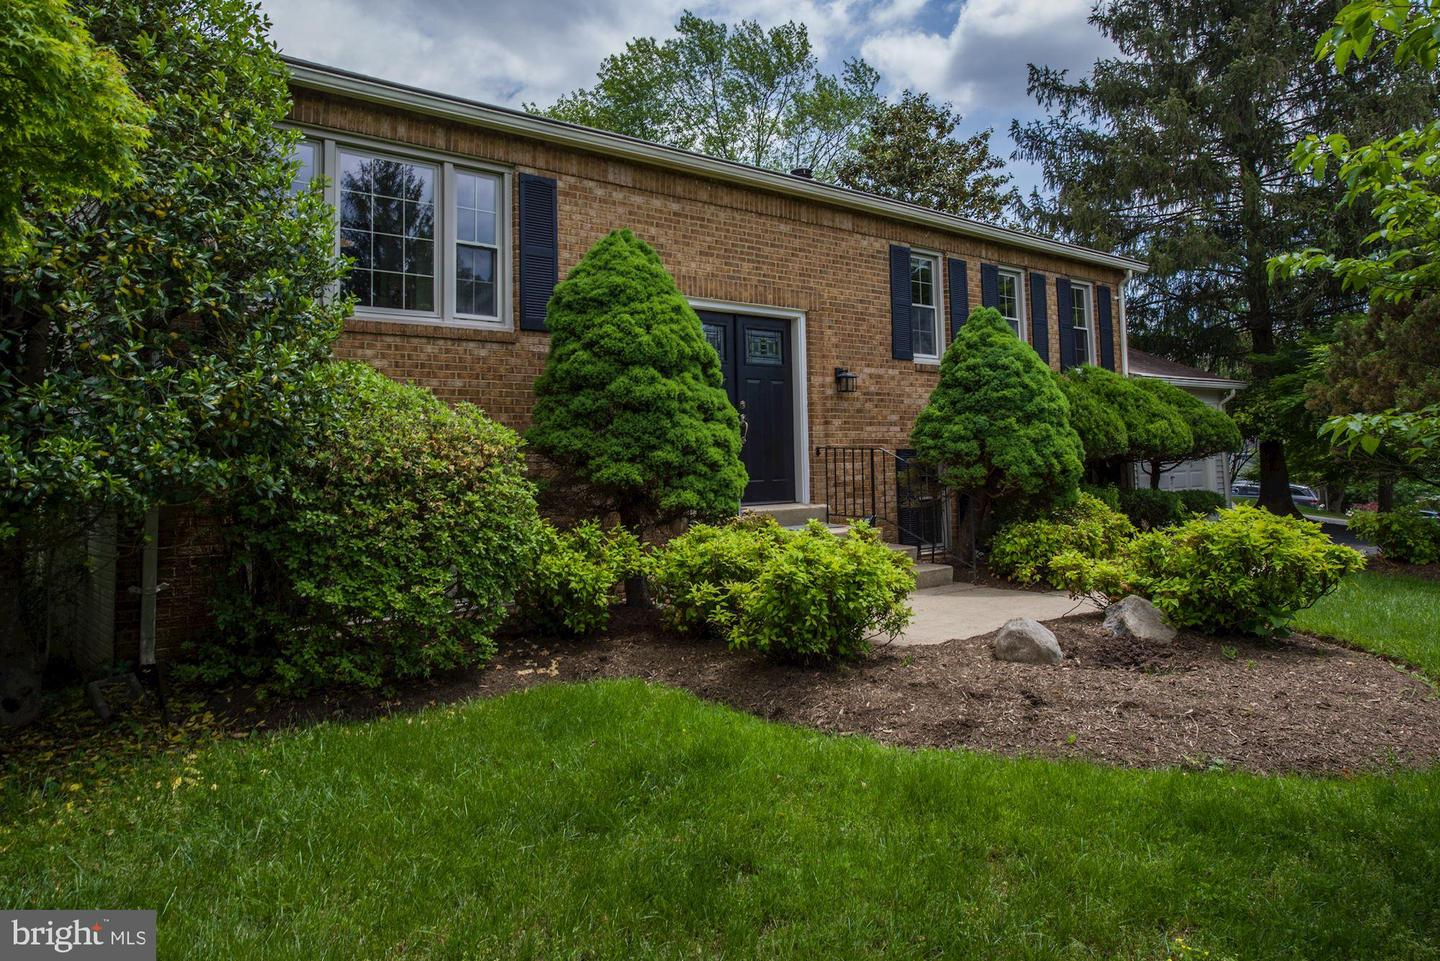 Single Family for Sale at 11925 Clover Knoll Rd 11925 Clover Knoll Rd North Potomac, Maryland 20878 United States